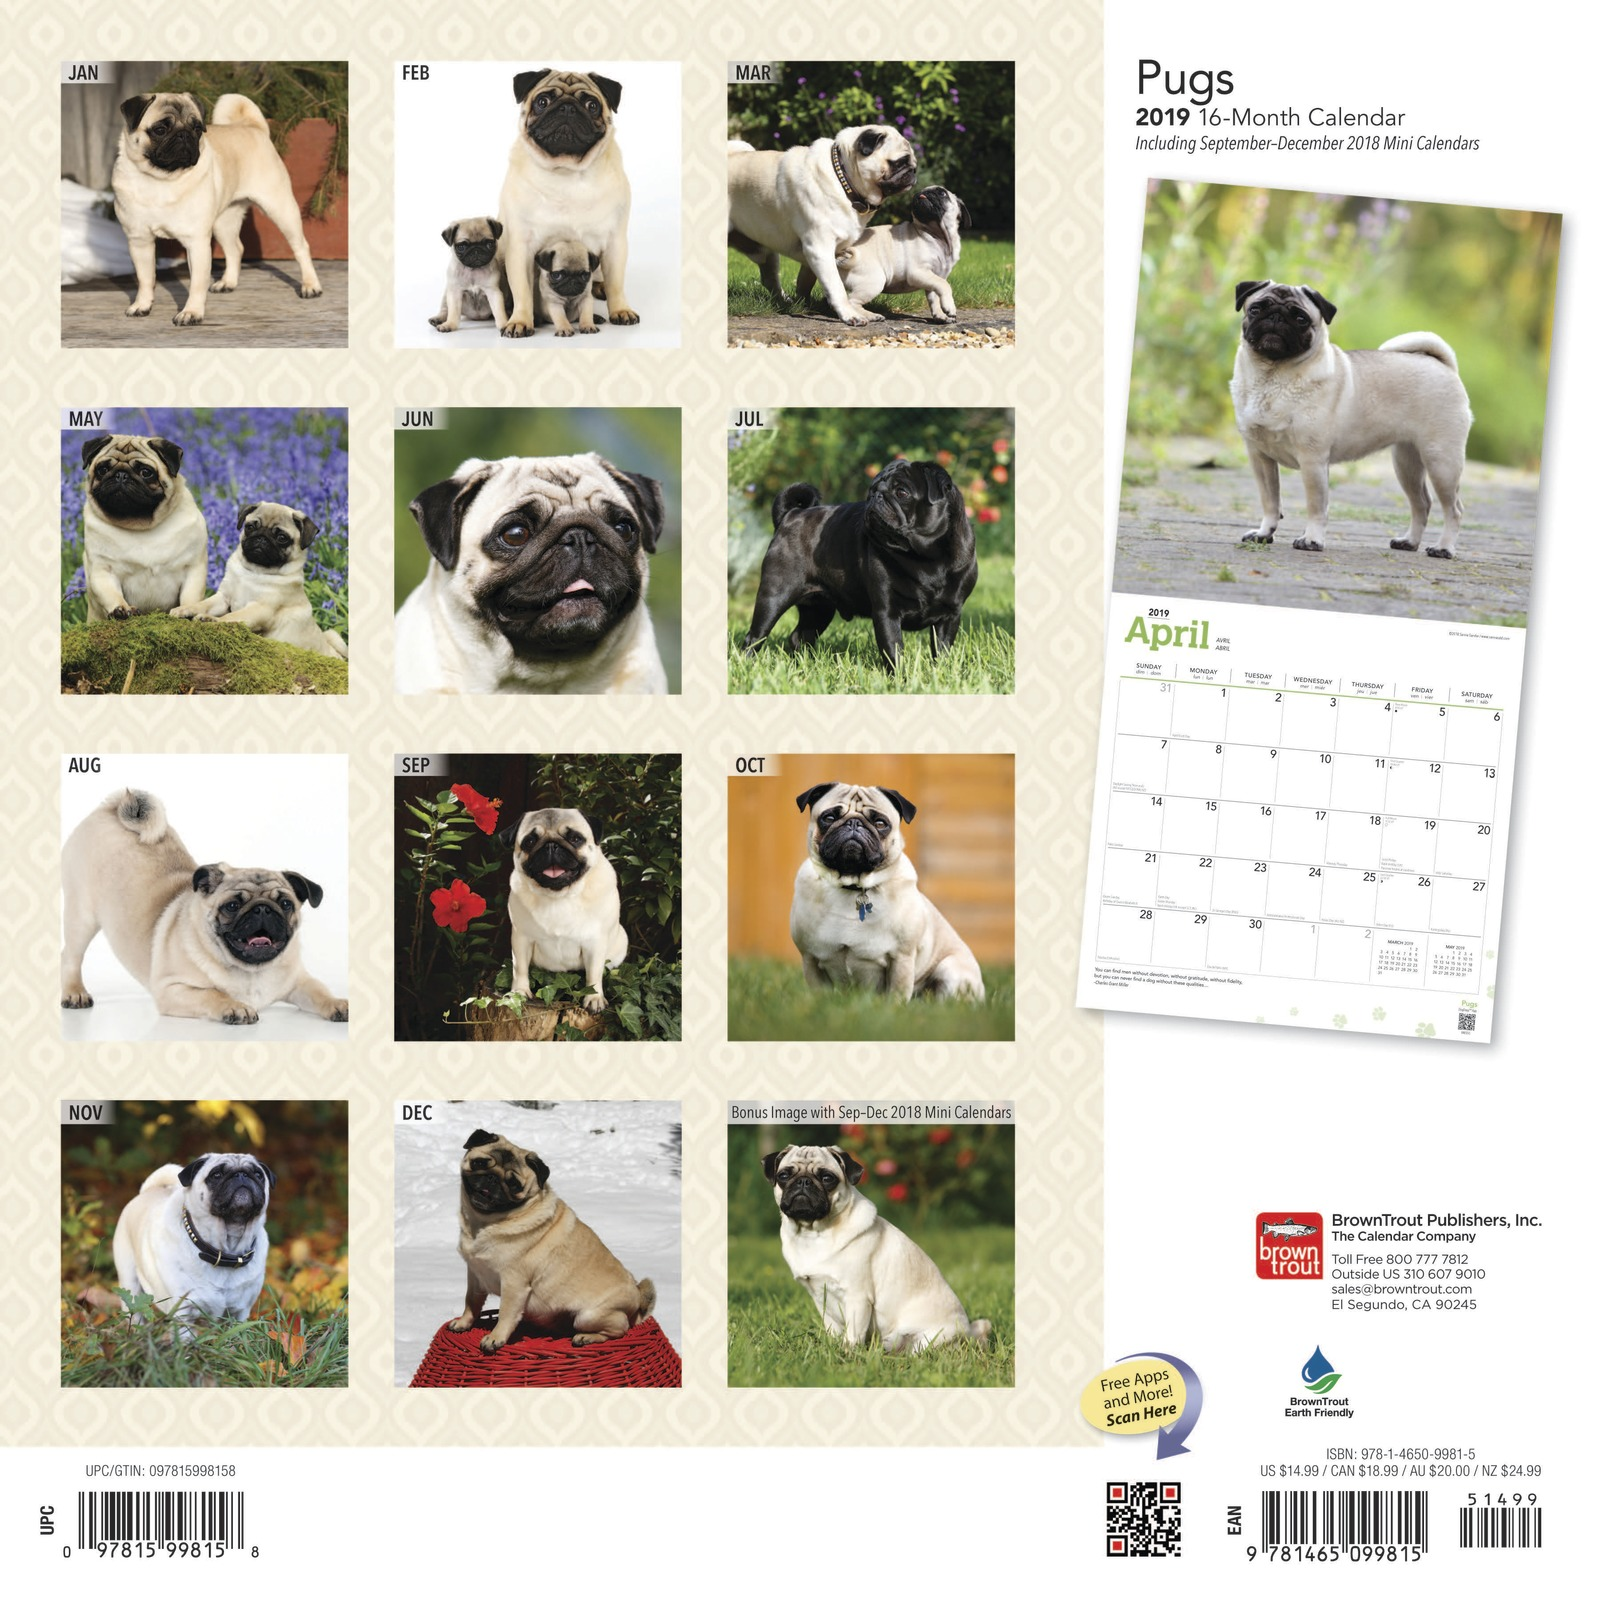 Pugs 2019 Square Wall Calendar by Inc Browntrout Publishers image